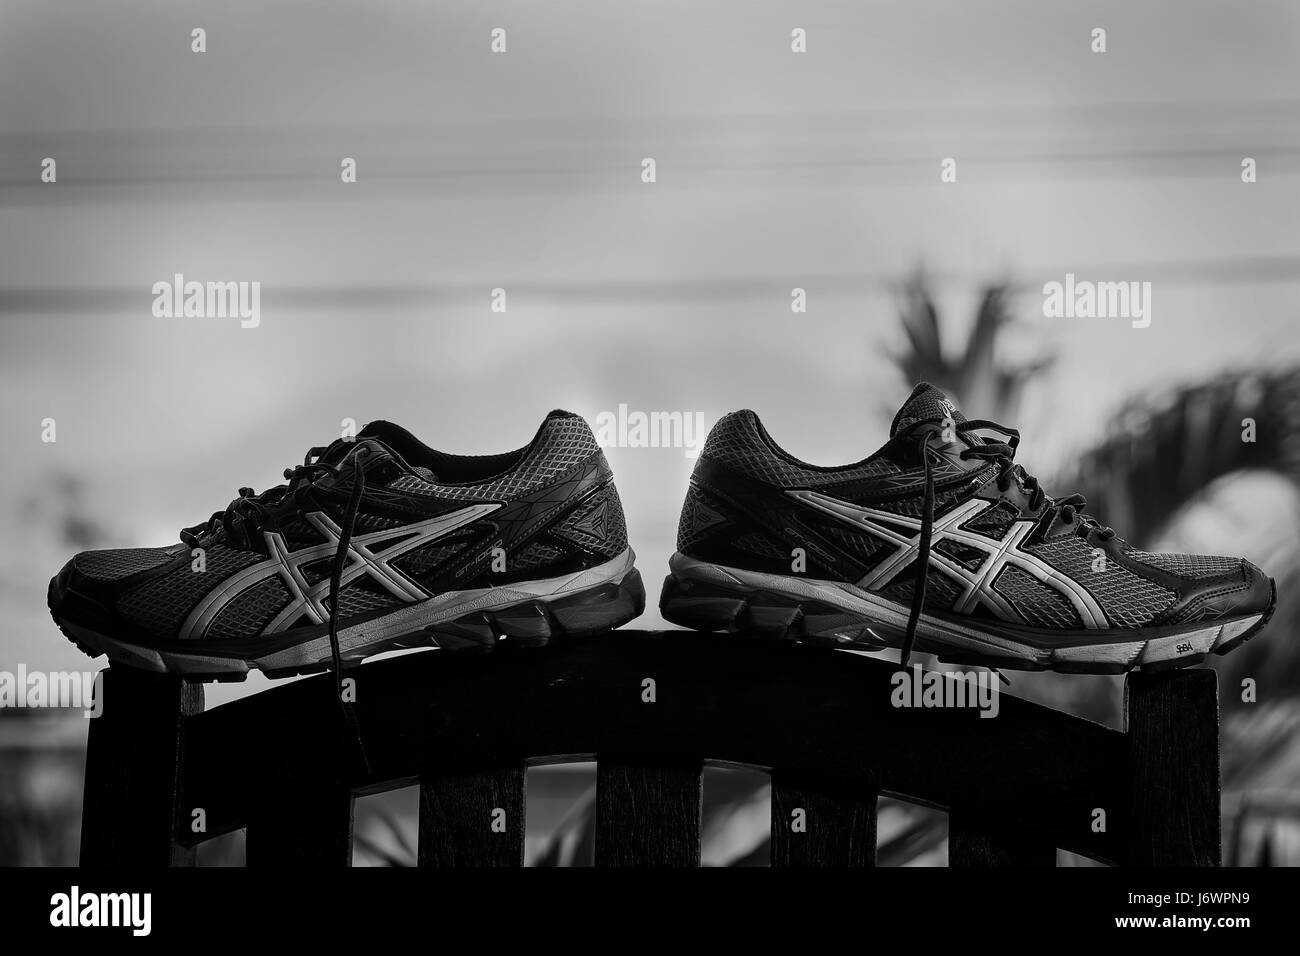 Asics Images Alamy Photos By amp; Shoes Made HwEBqAR